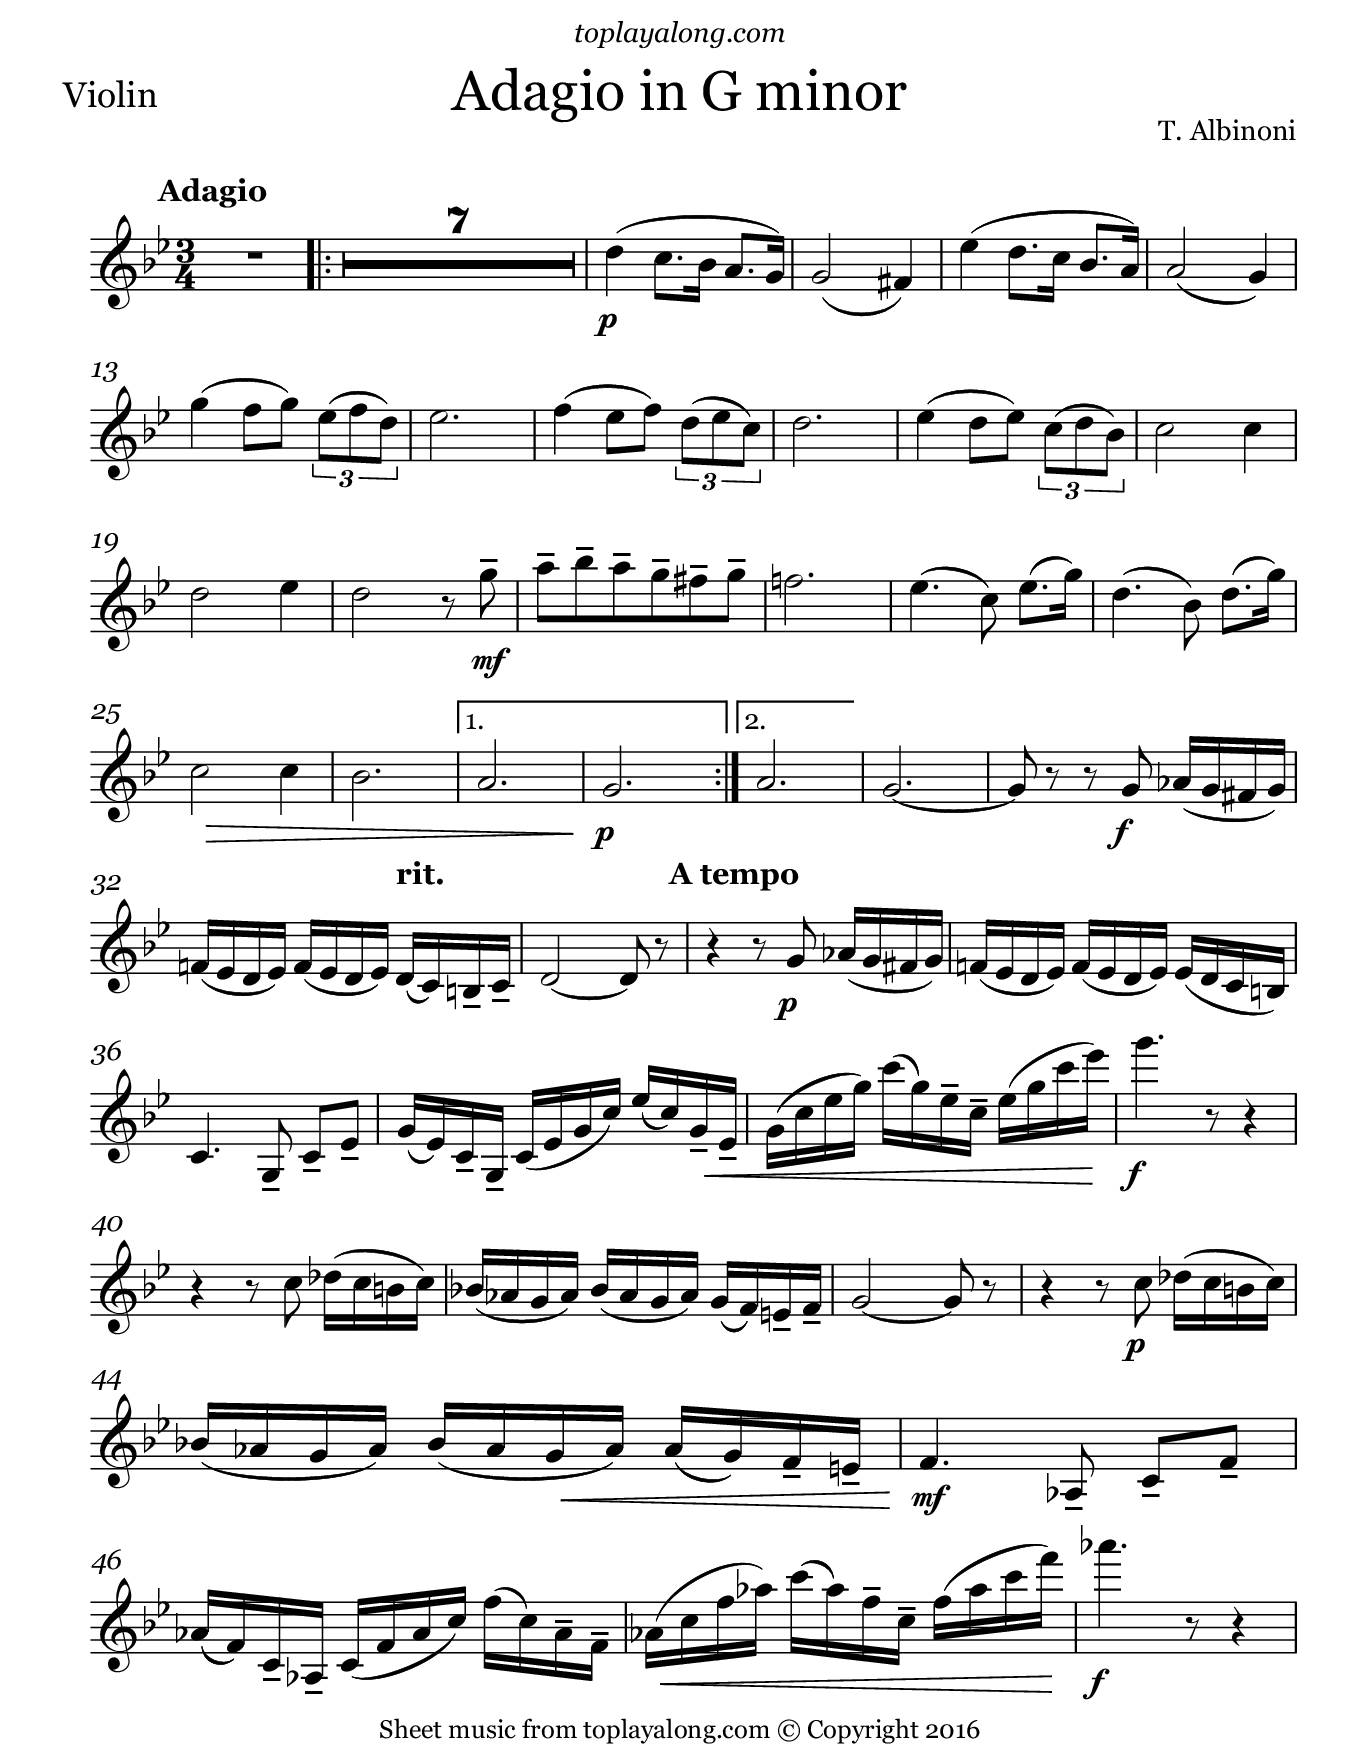 Adagio in G minor by Albinoni. Sheet music for Violin, page 1.